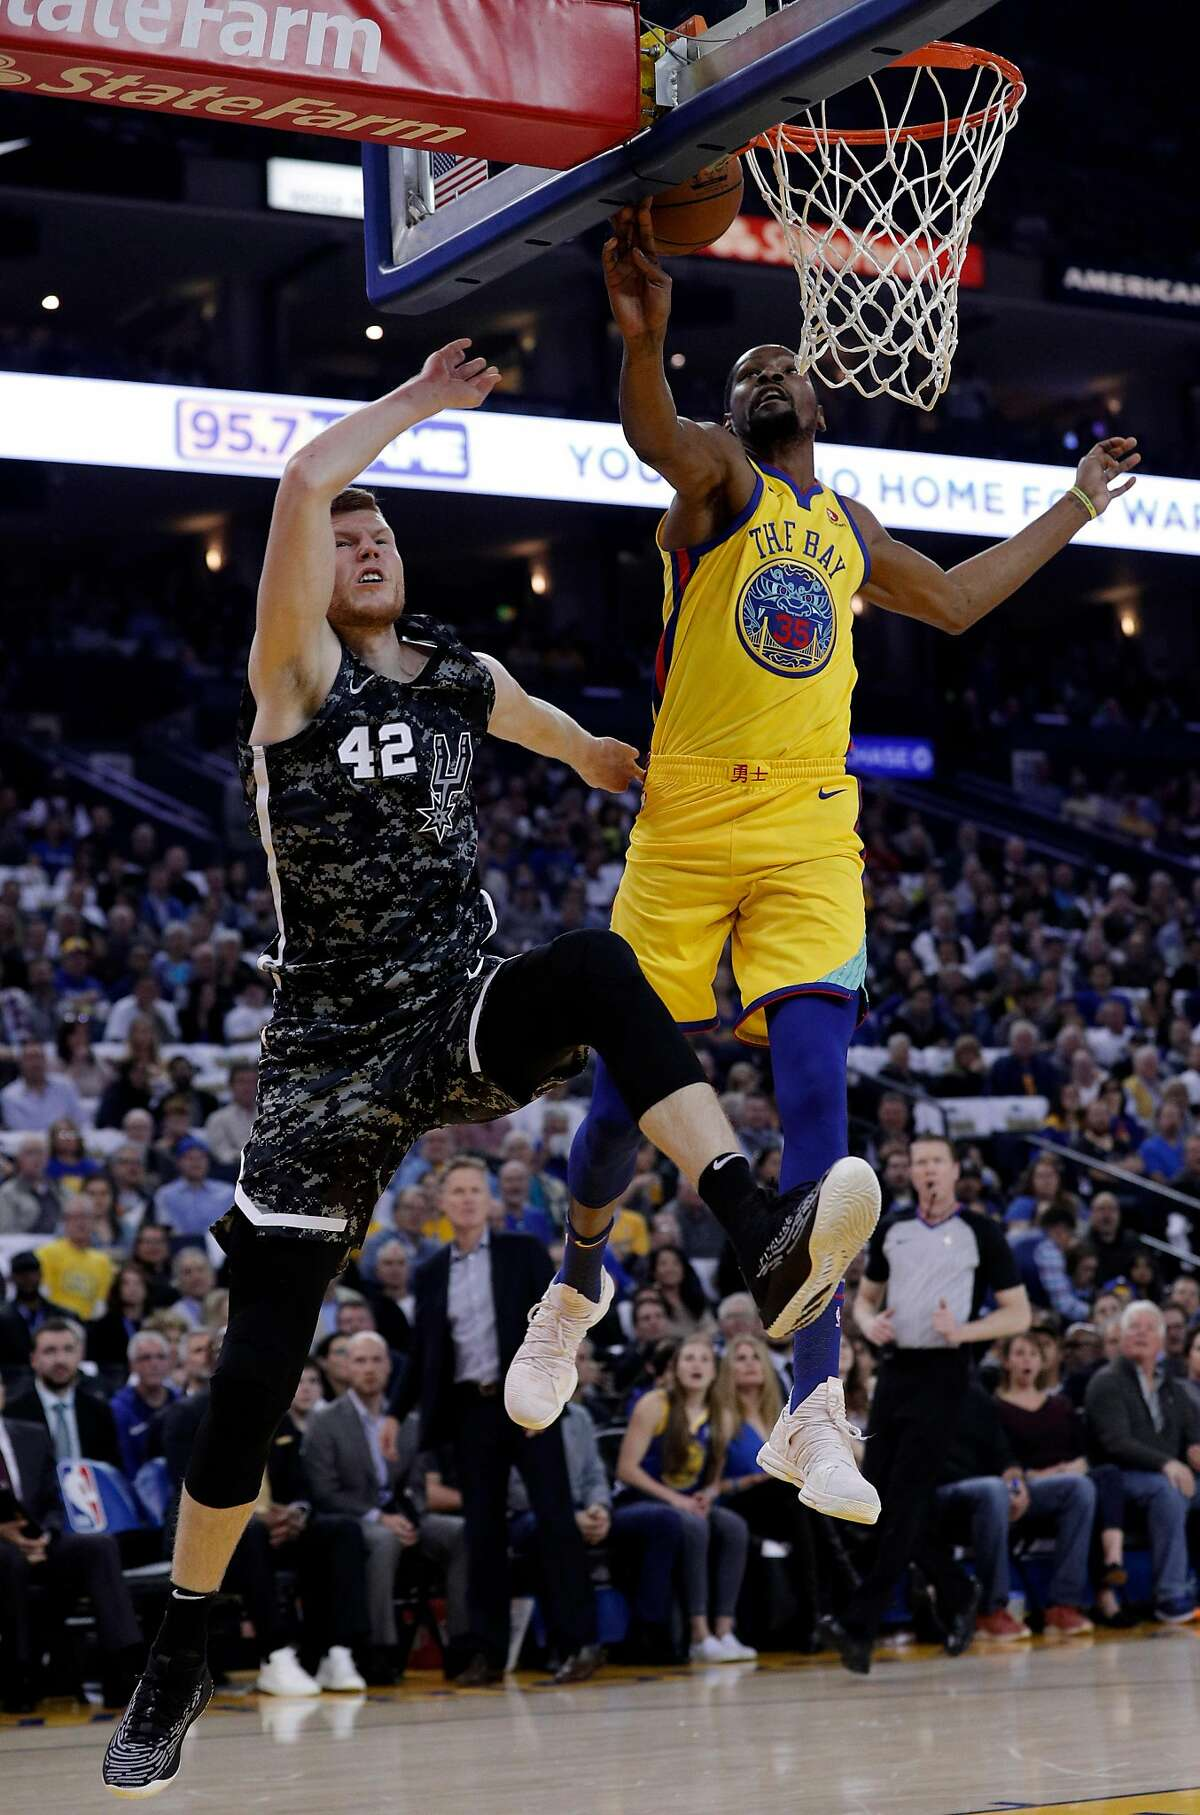 Kevin Duran (35) blocks a shot by Davis Bertans (42) in the first half as the Golden State Warriors played the San Antonio Spurs at Oracle Arena in Oakland, Calif., on Thursday, March 8, 2018.